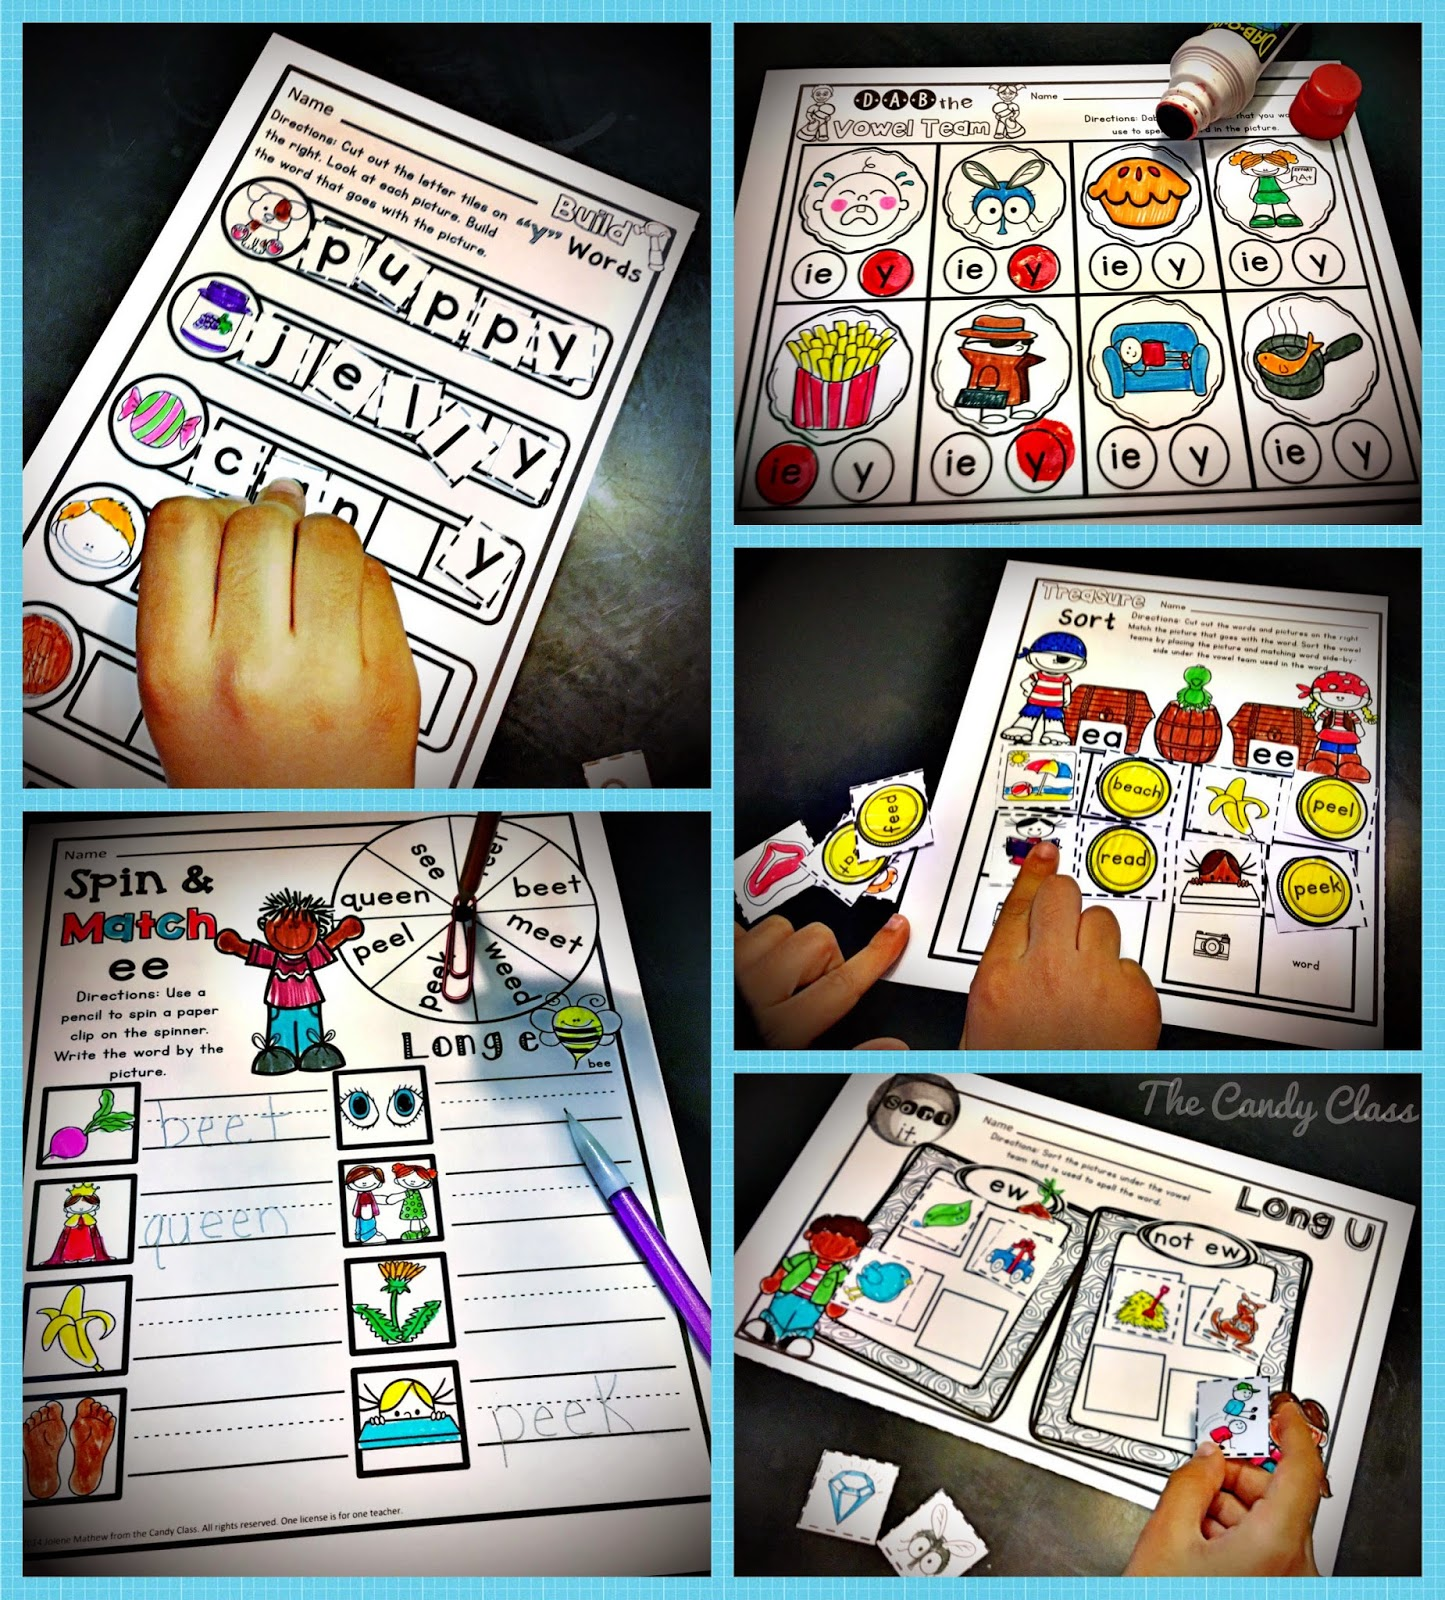 worksheet Vowel Team Worksheets oa oe ow the vowel teams candy class skills like main point i am trying to make is worksheets should be kept in moderation and children need more than just work